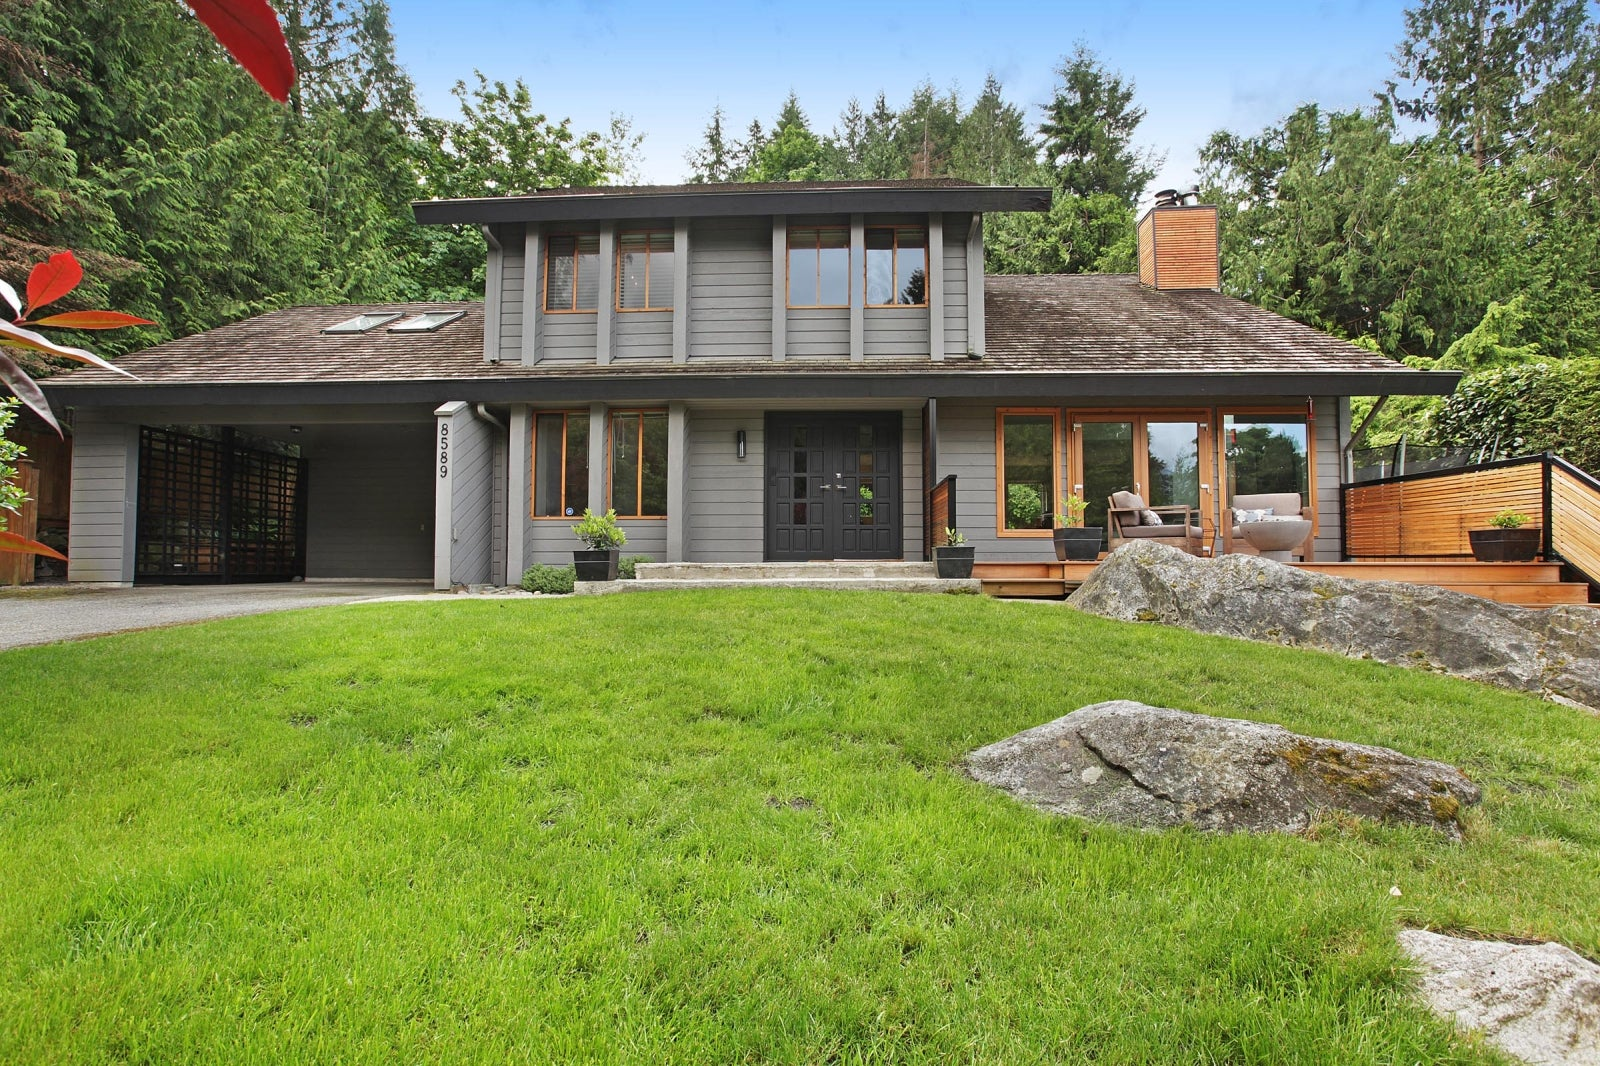 8589 BEDORA PLACE - Howe Sound House/Single Family for sale, 4 Bedrooms (R2177298) #1